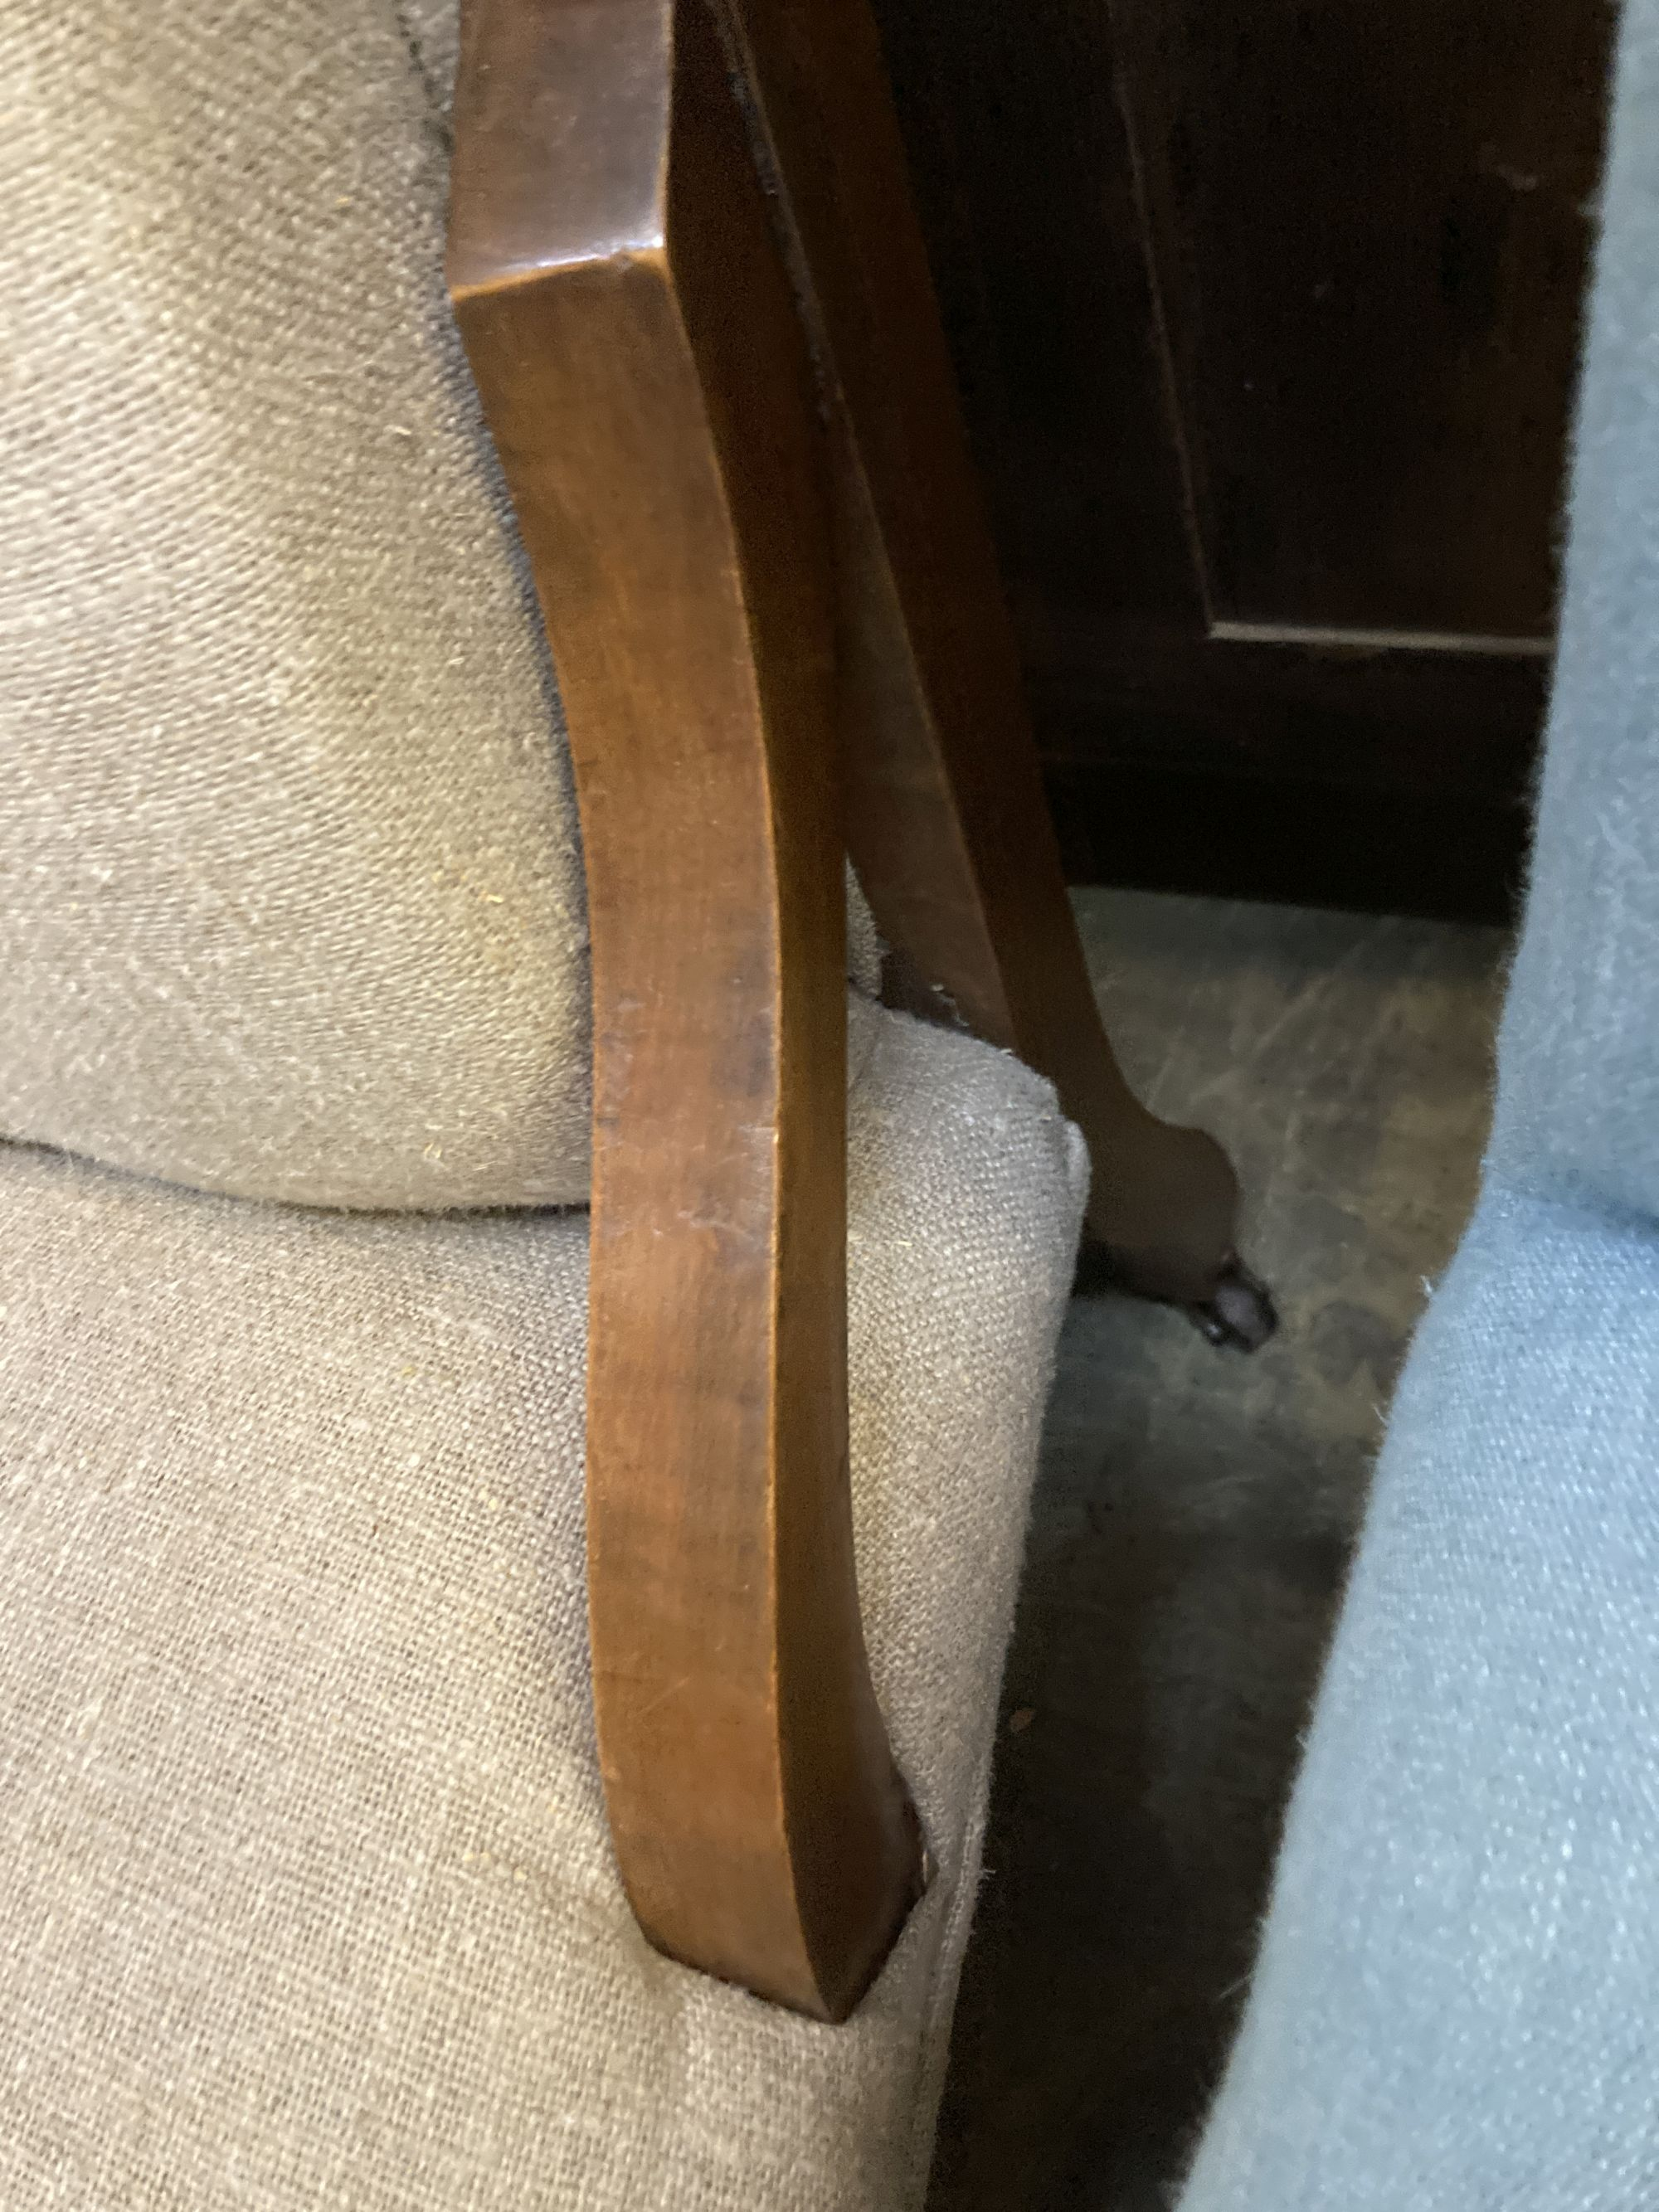 A late Victorian Art Nouveau salon chair, upholstered in buttoned natural fabric, width 60cm, - Image 3 of 4